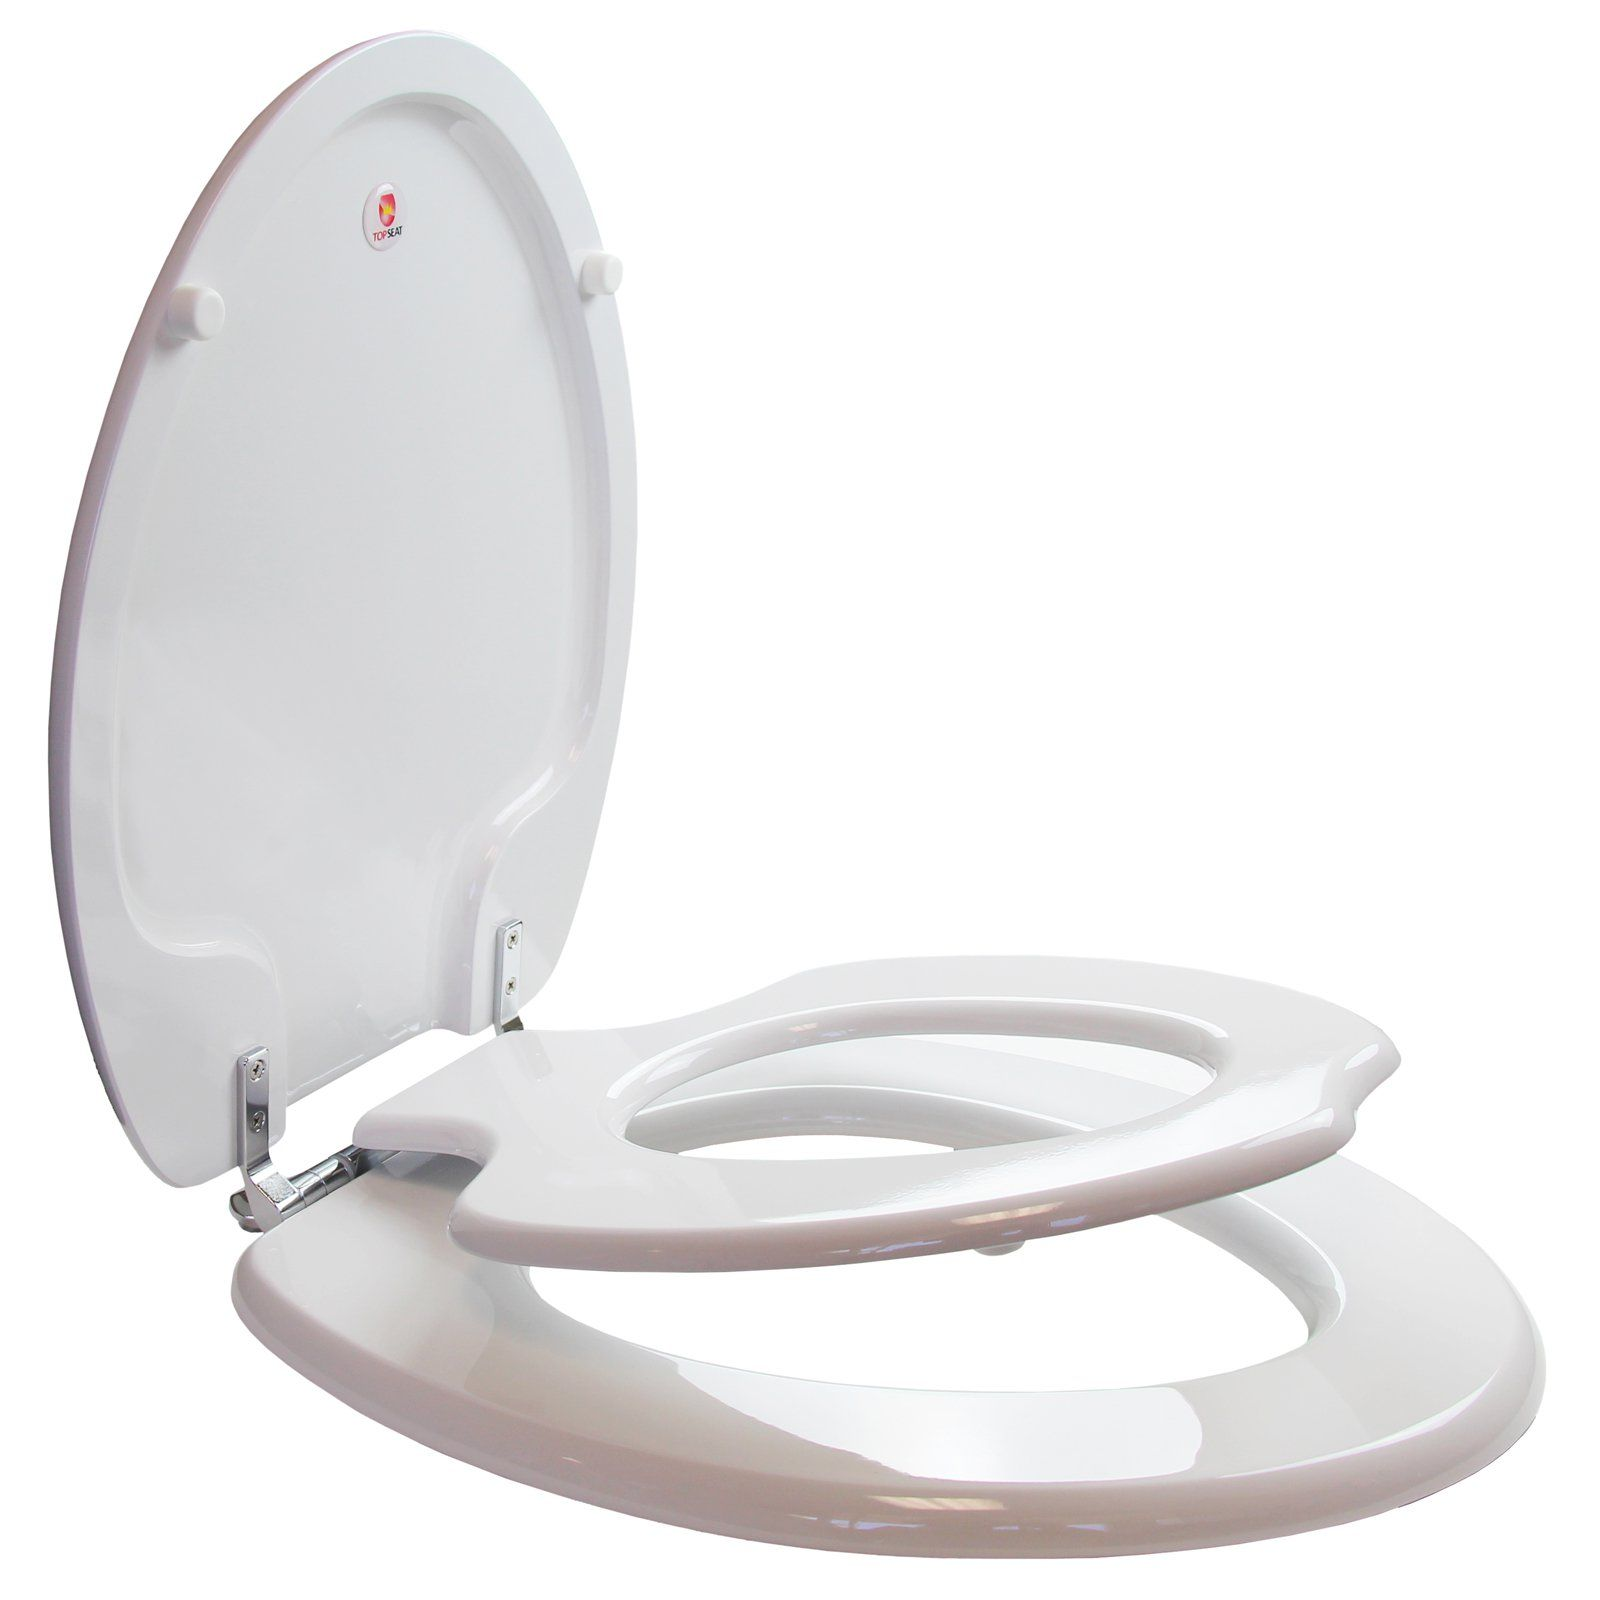 Topseat 6tste9999cp Tinyhiney Potty Elongated Toilet Seat Toilet